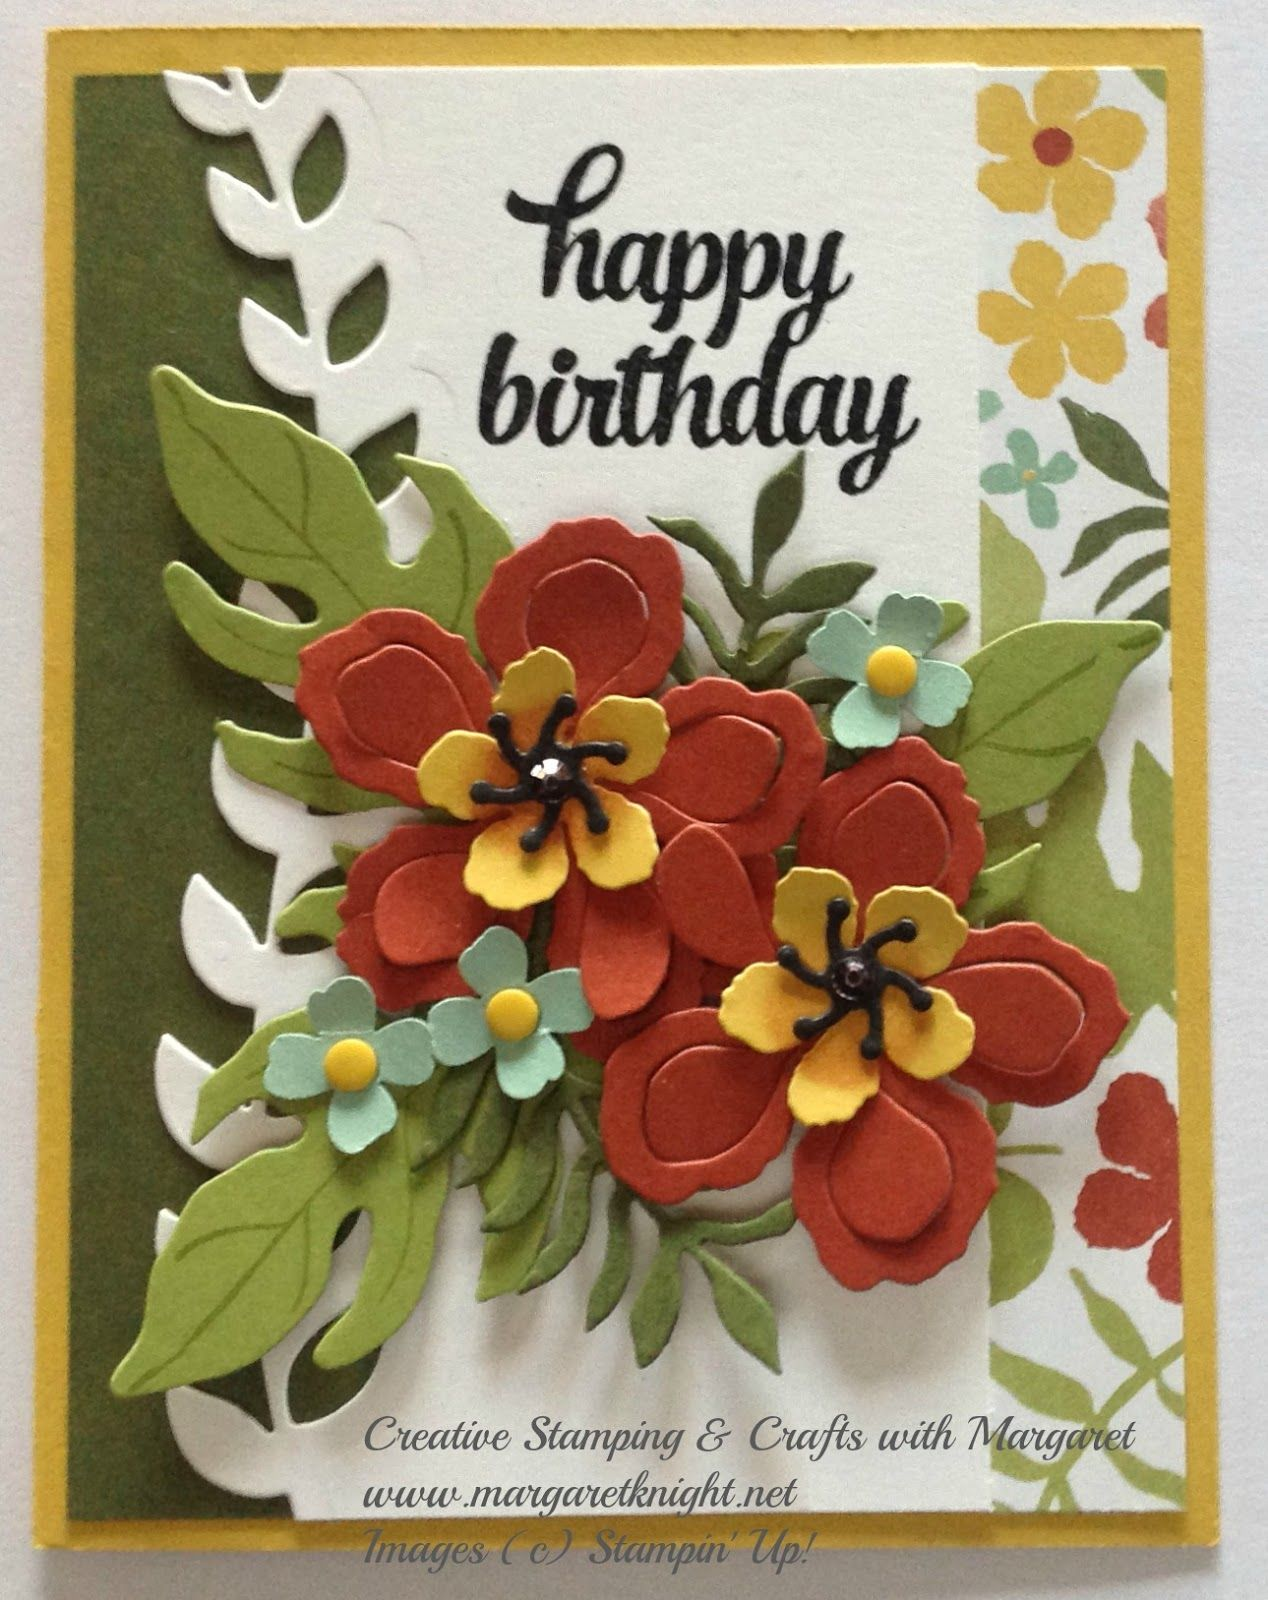 Yes I M Still Sharing Cards From The All About Birthdays Class The Card In This Post Uses One Of My Favorite Stamping Up Cards Cards Handmade Flower Cards